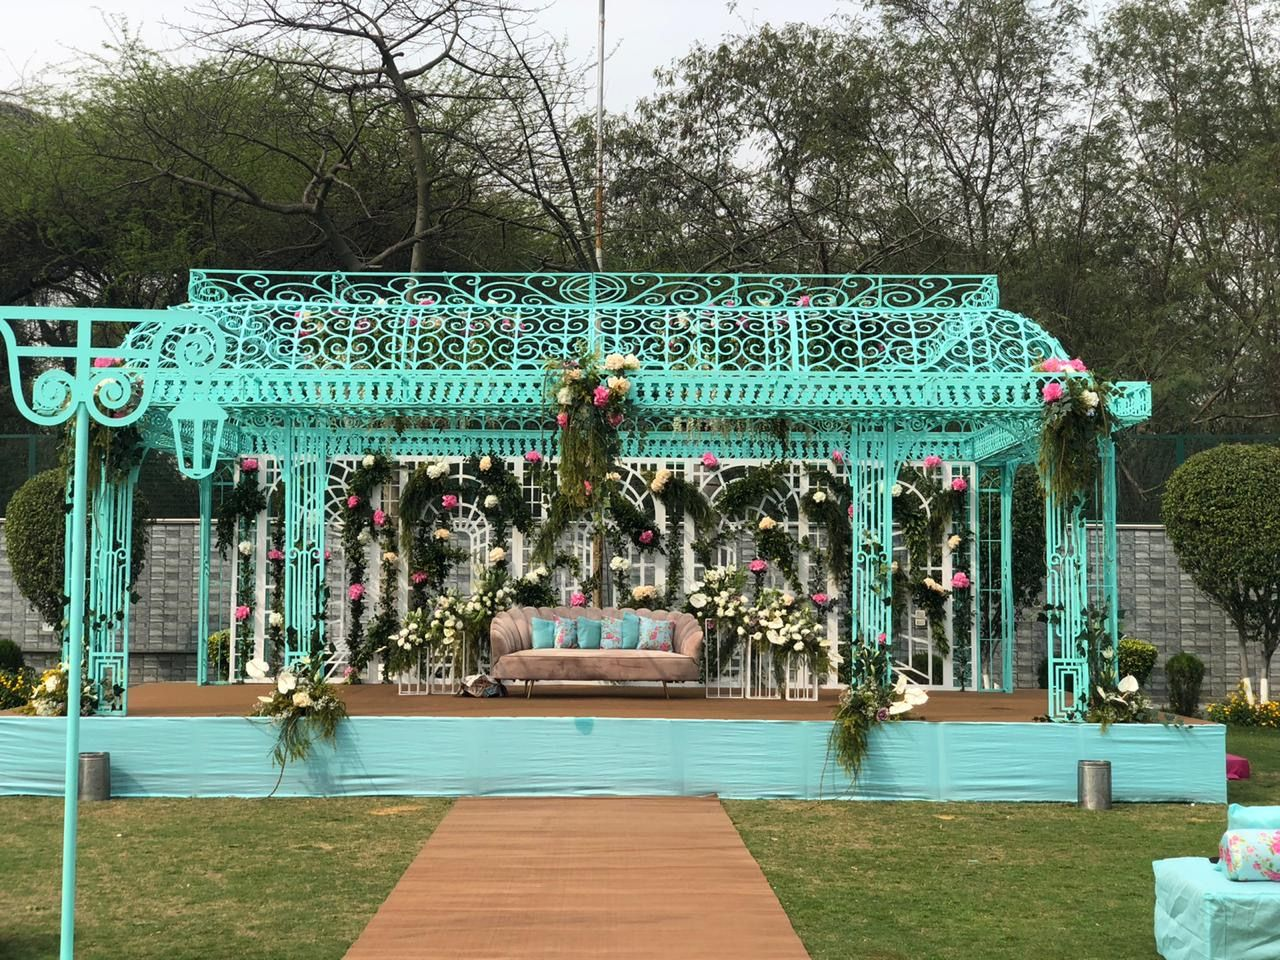 Breathtaking Vintage Theme Add-ons that We Spotted For Your Wedding, 843bebb8 9020 4f88 912f c484be3b8170.jpg